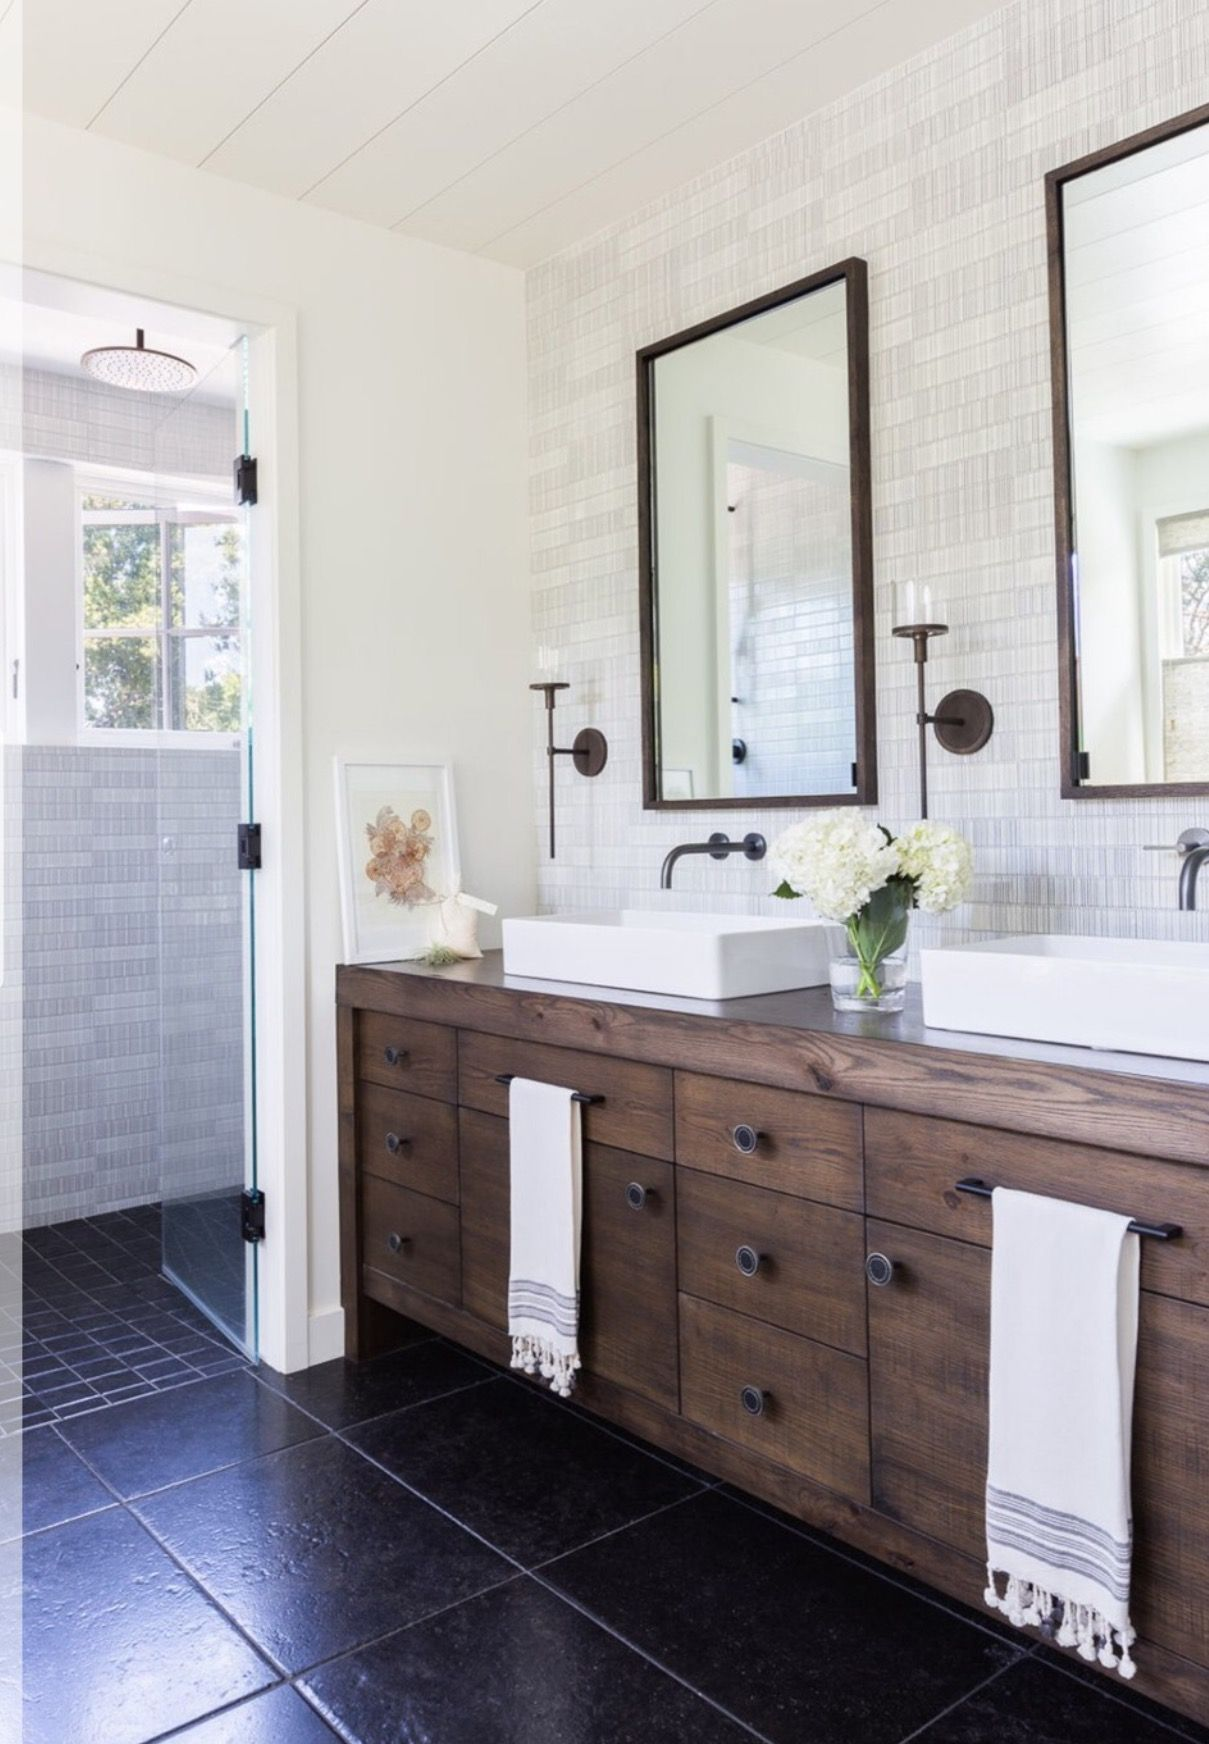 Rustic bathroom, rue mag | rustic houses interior design | Pinterest ...